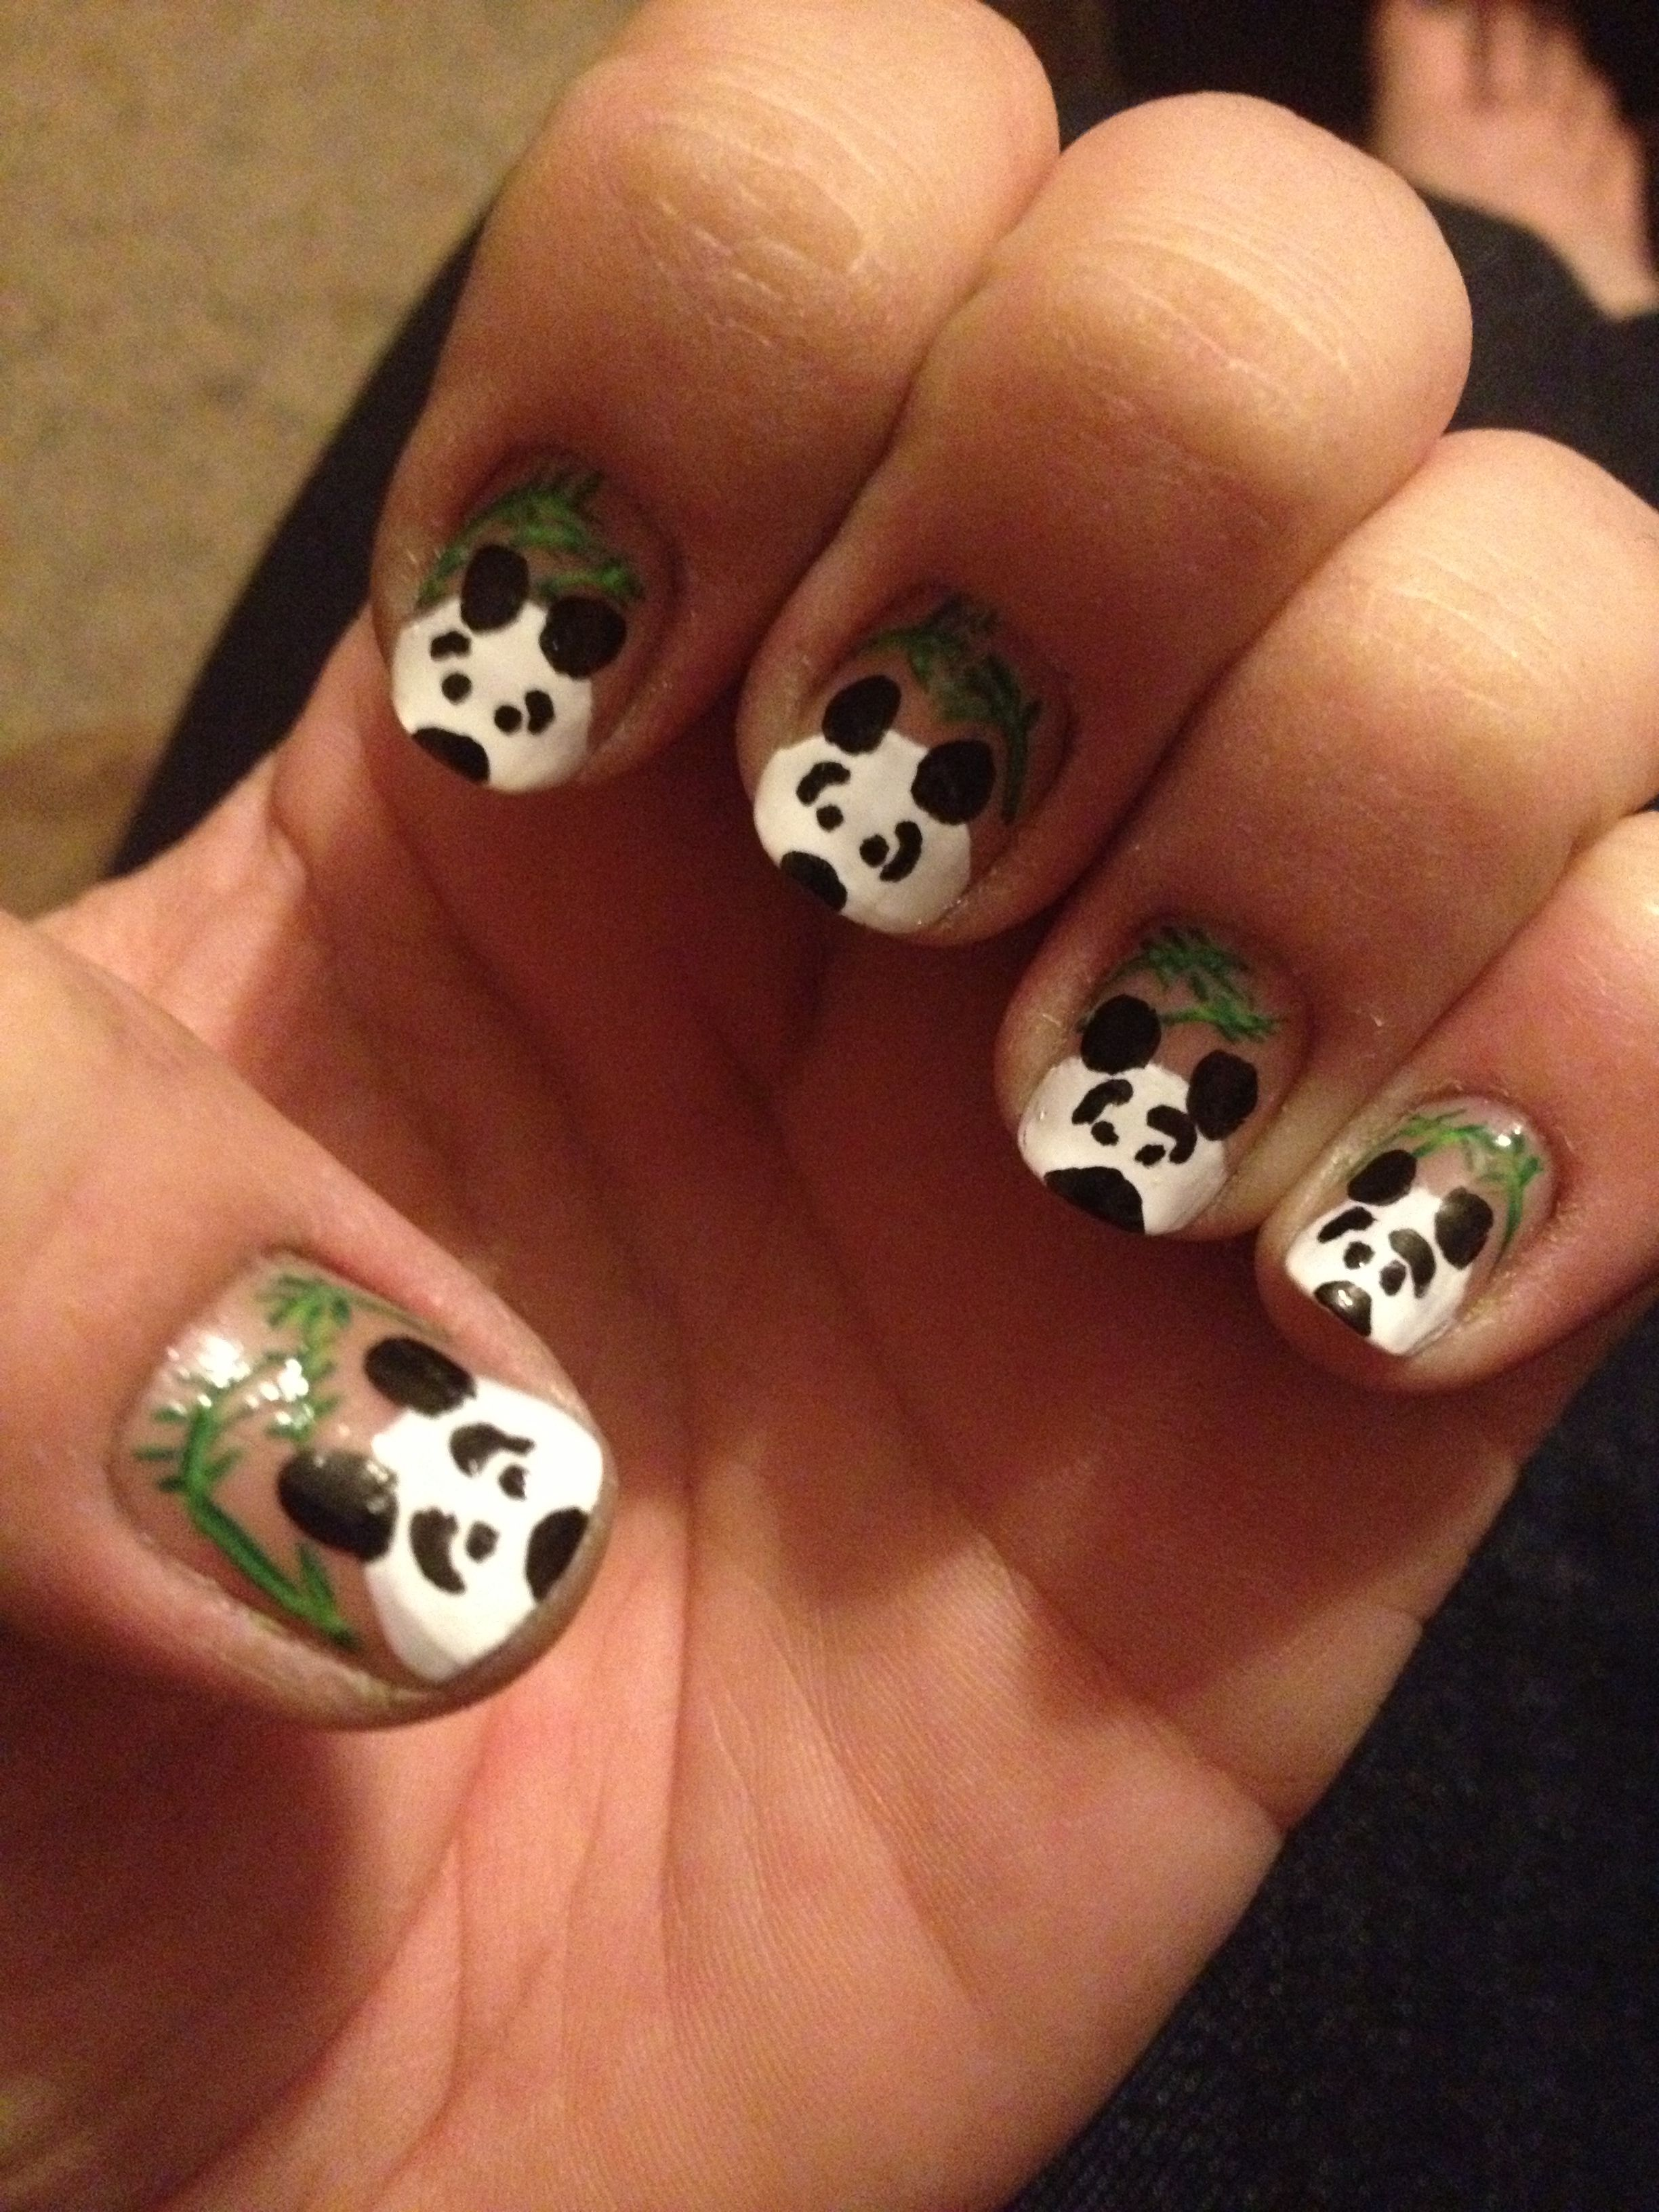 Panda Bear Nail Art Nails Pinterest Panda bear nails Hair